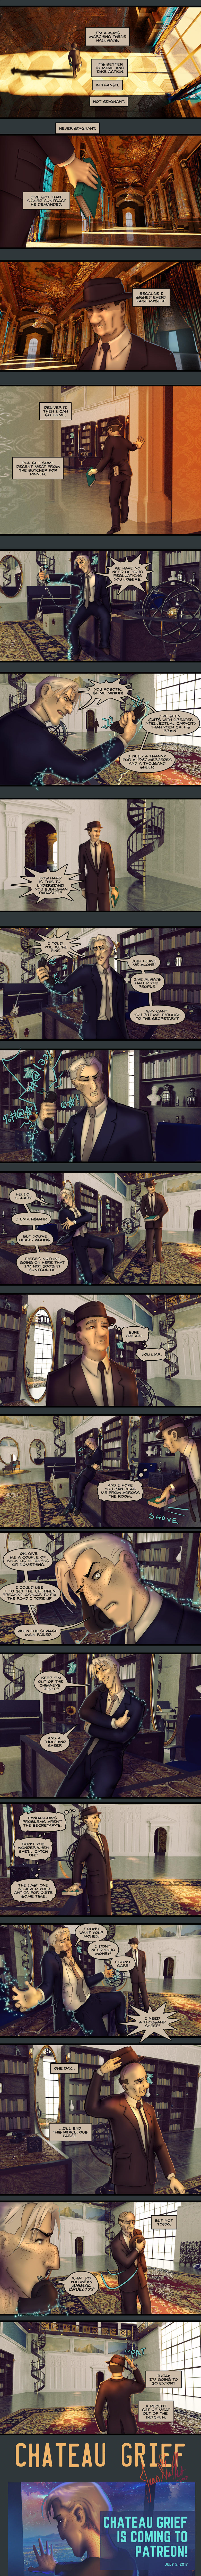 Chateau Grief 115